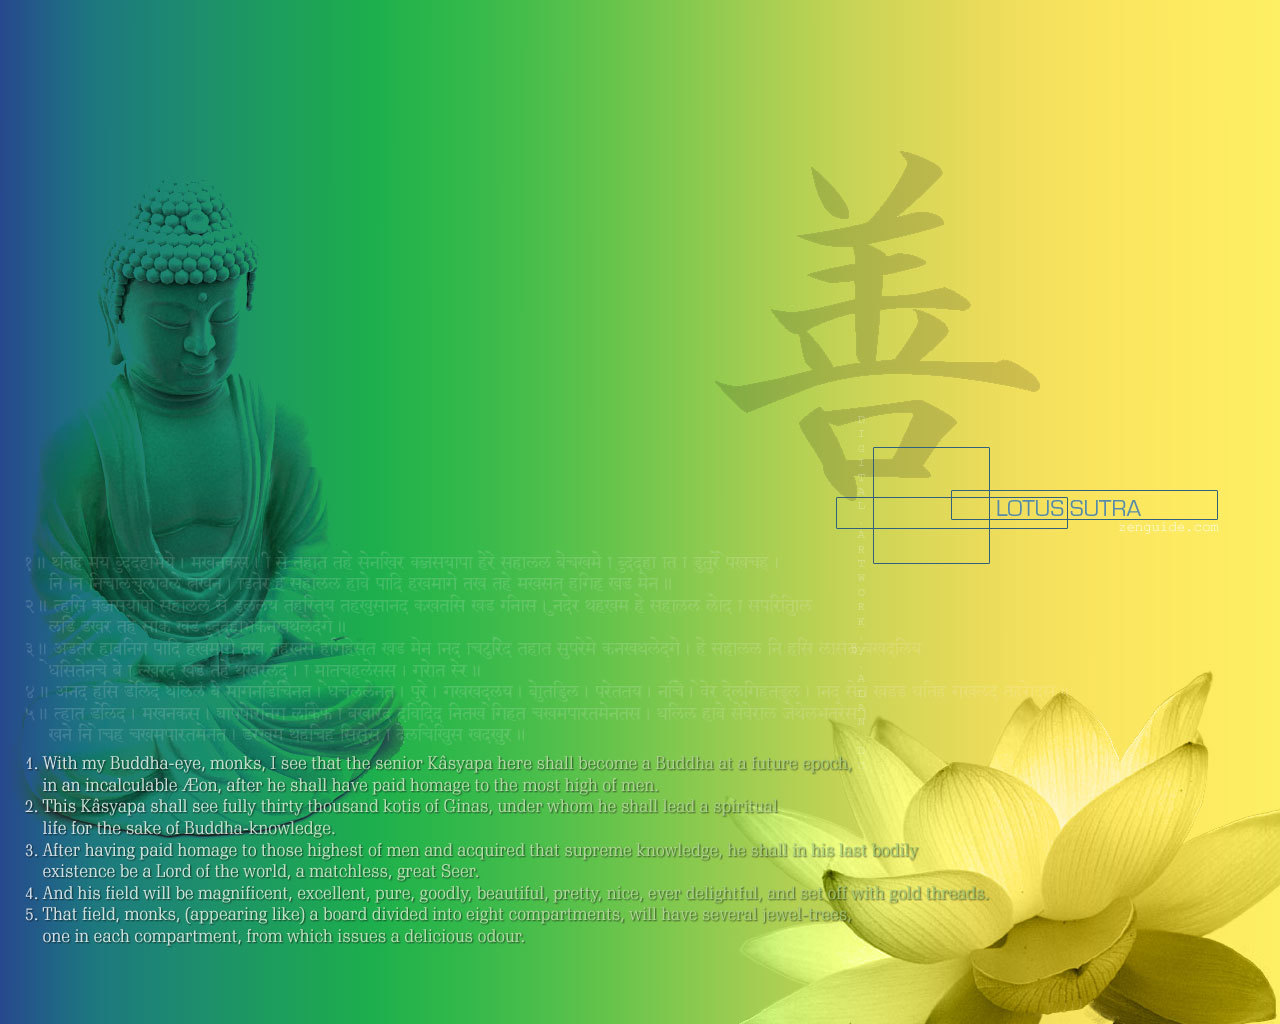 lotus sutra quote Buddha HD Wallpaper